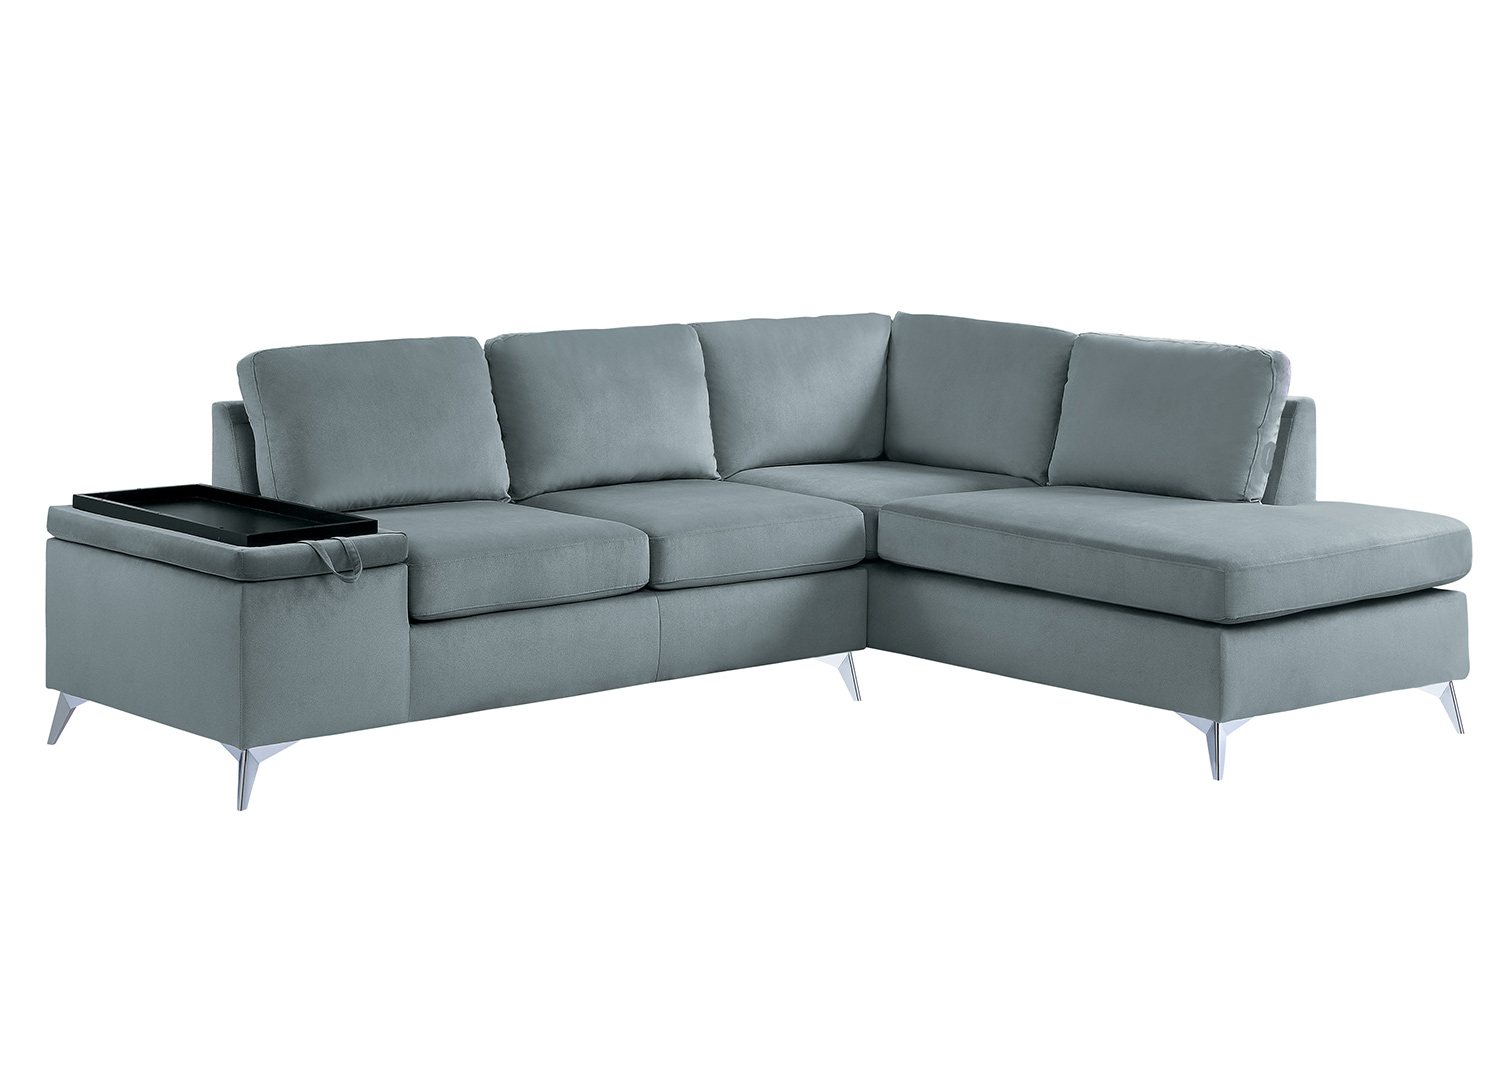 Homelegance Radnor Sectional Sofa Set - Gray